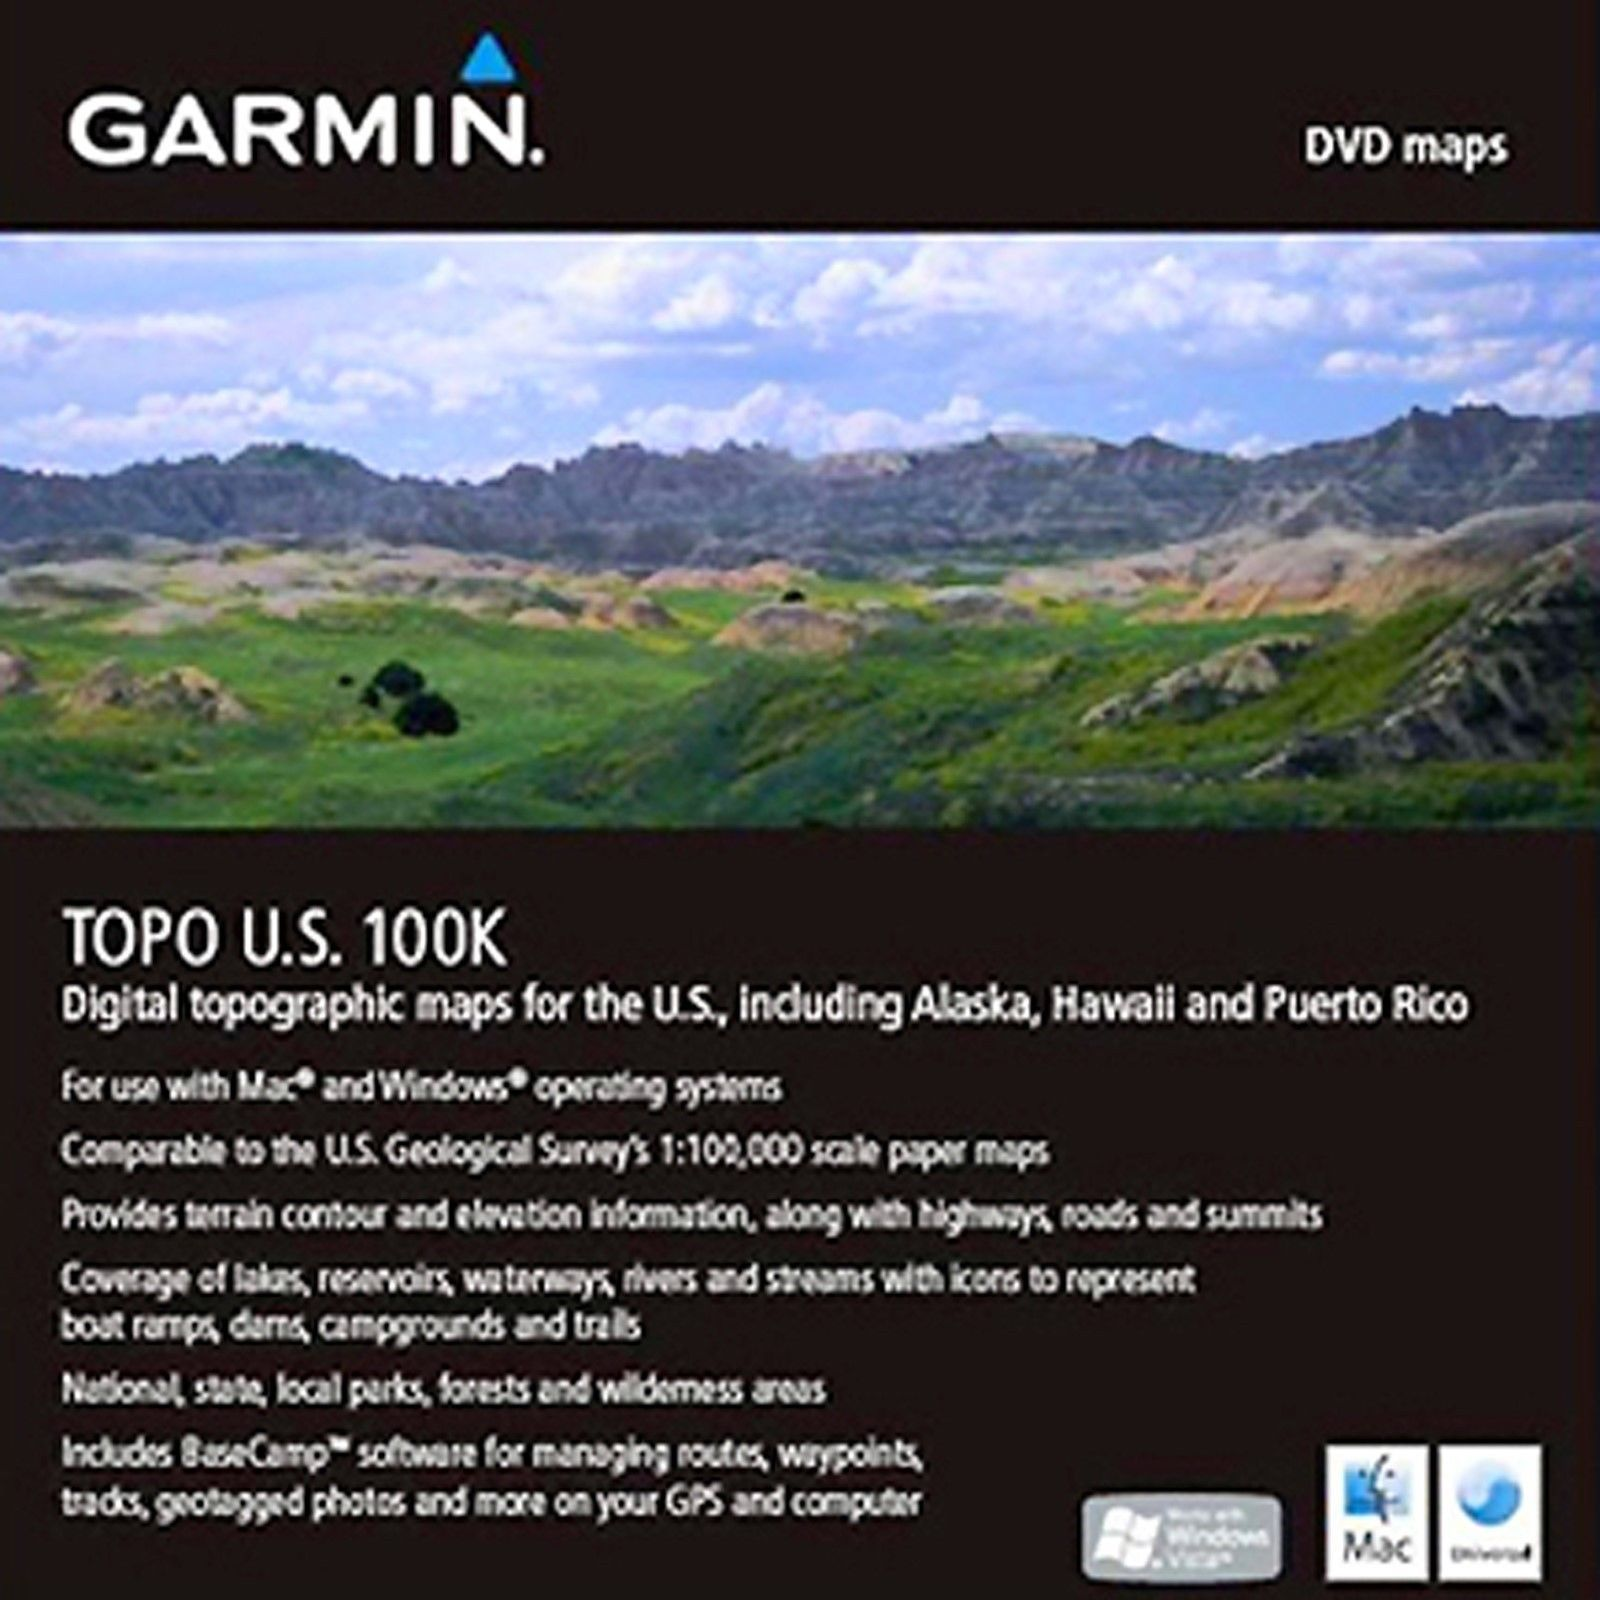 GPS Software And Maps Garmin Us Topo Maps Works W Windows - Where to buy us topo maps